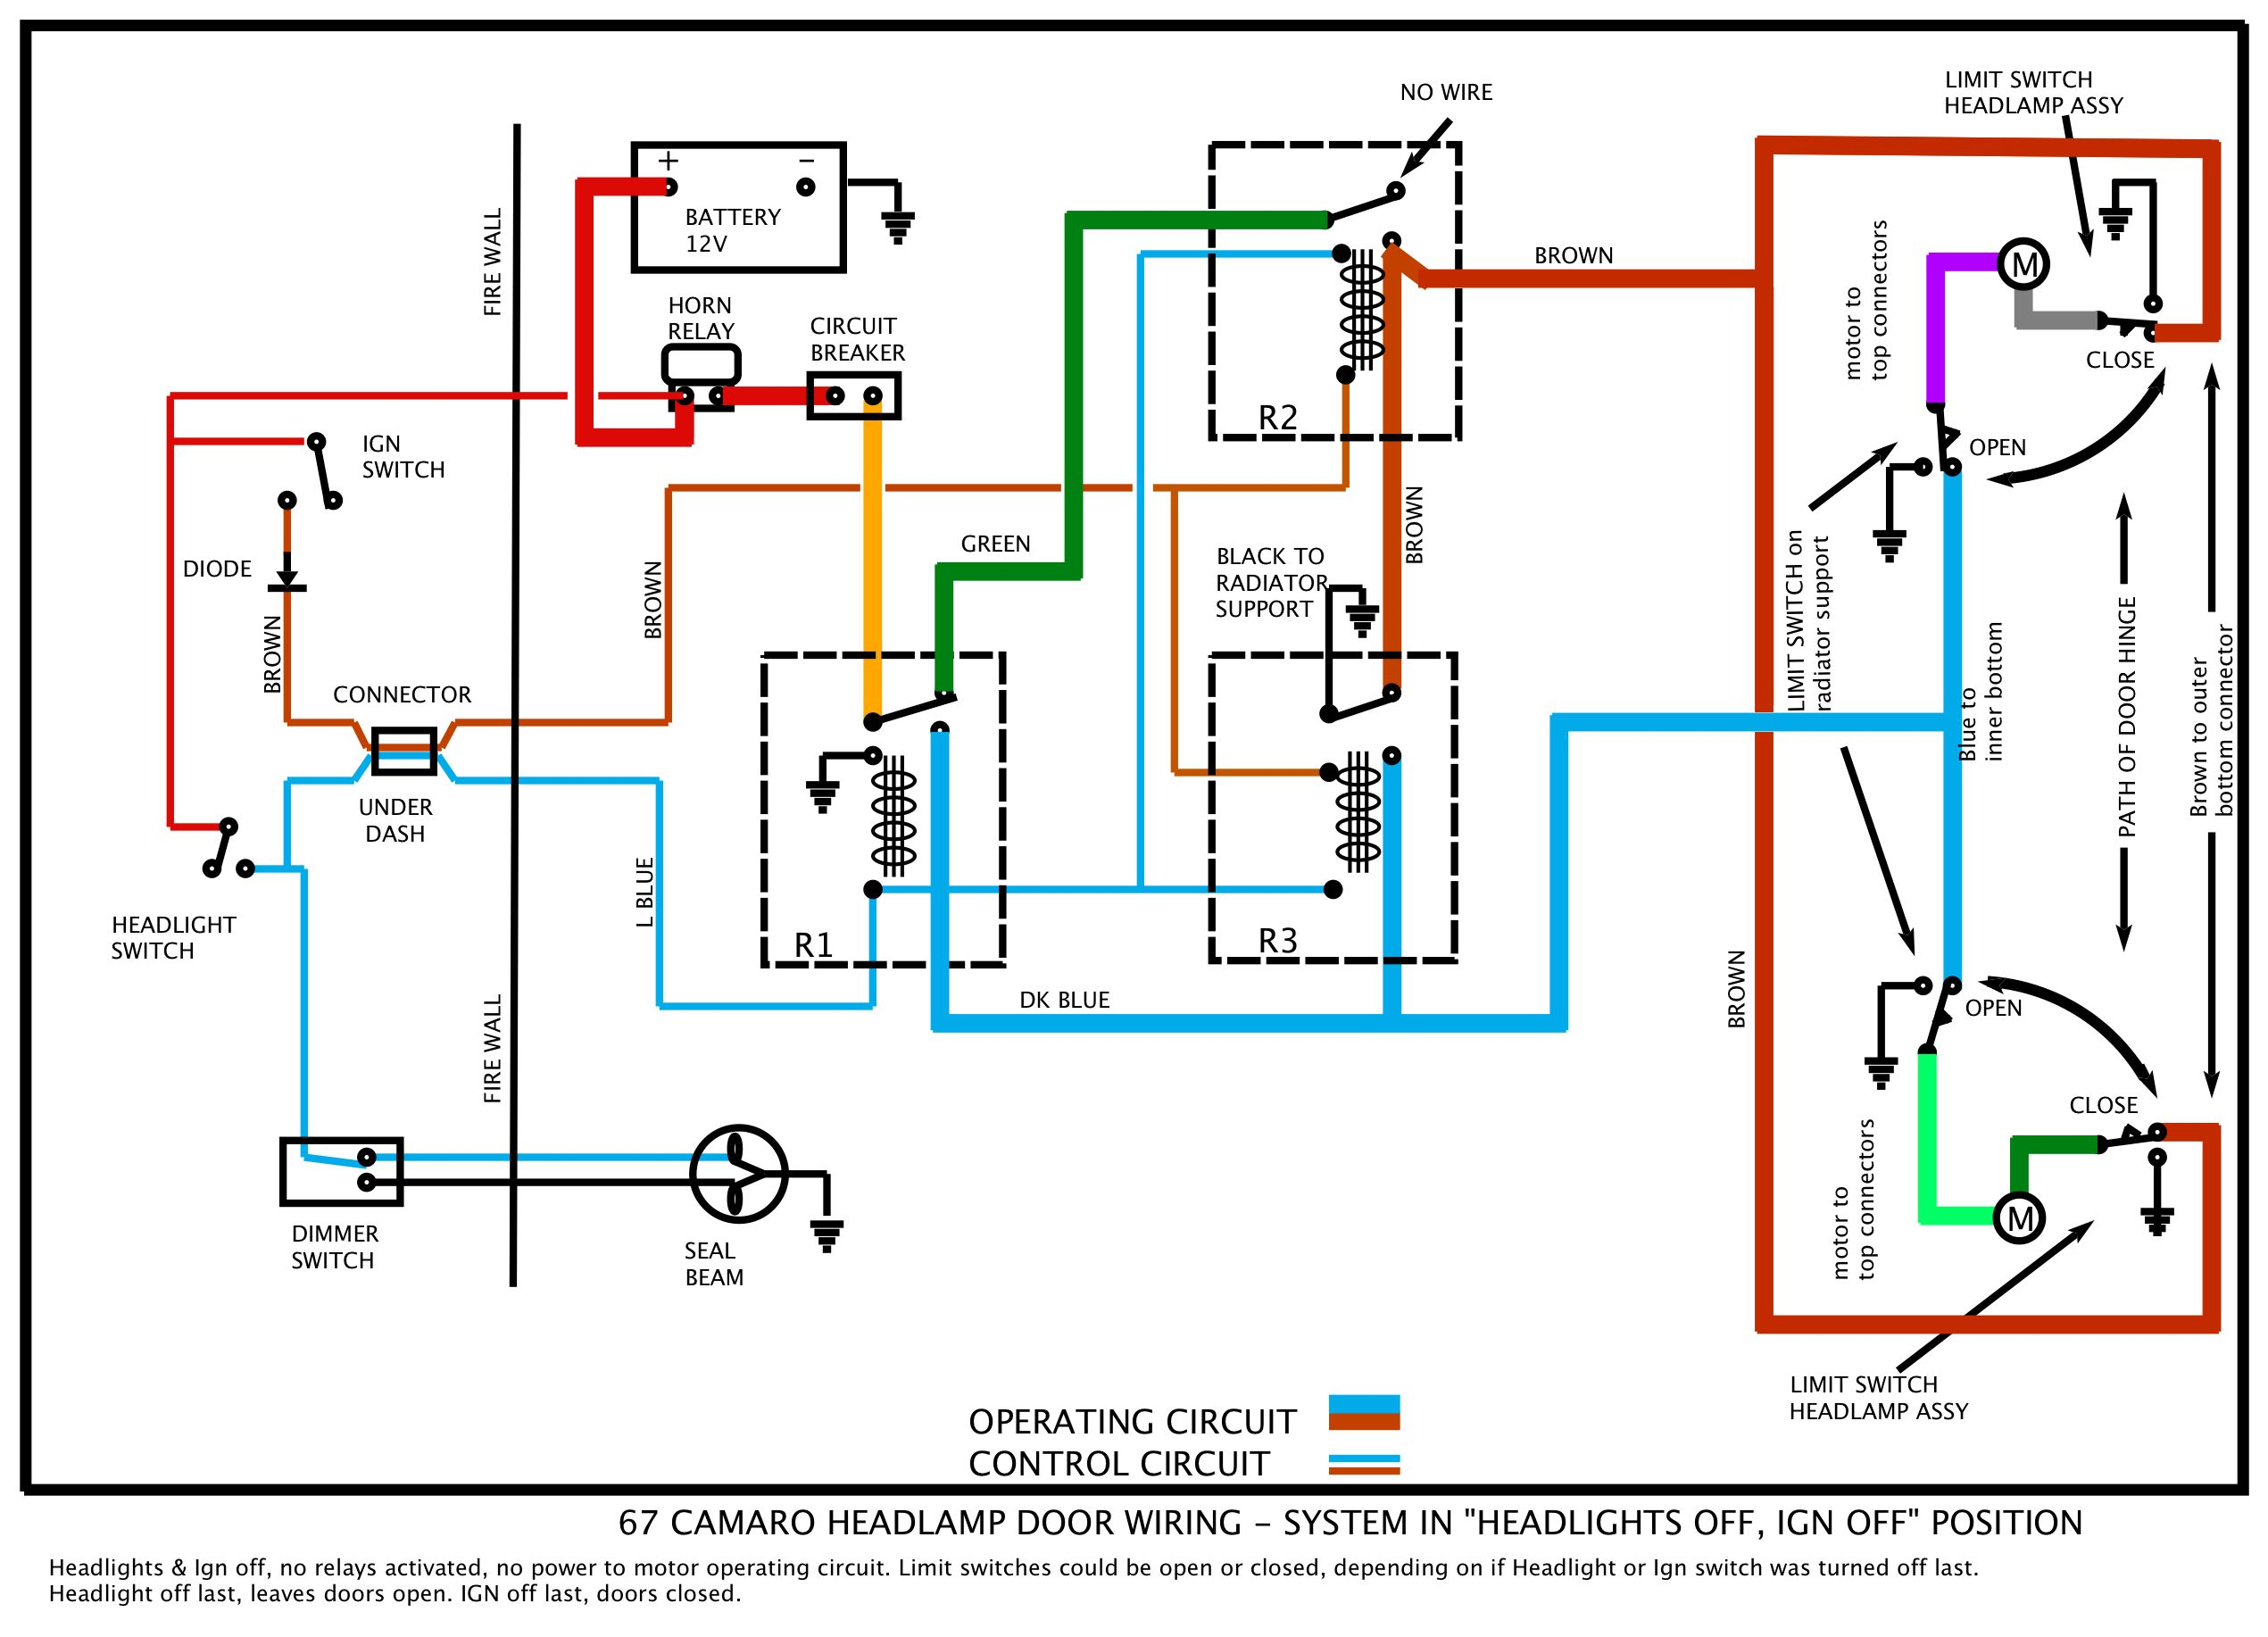 67 camaro rs wiring diagram limit switch wiring diagram will be a rh  exploreandmore co uk 1968 Camaro Wiper Wiring Diagram 1968 Camaro Dash  Wiring Diagram